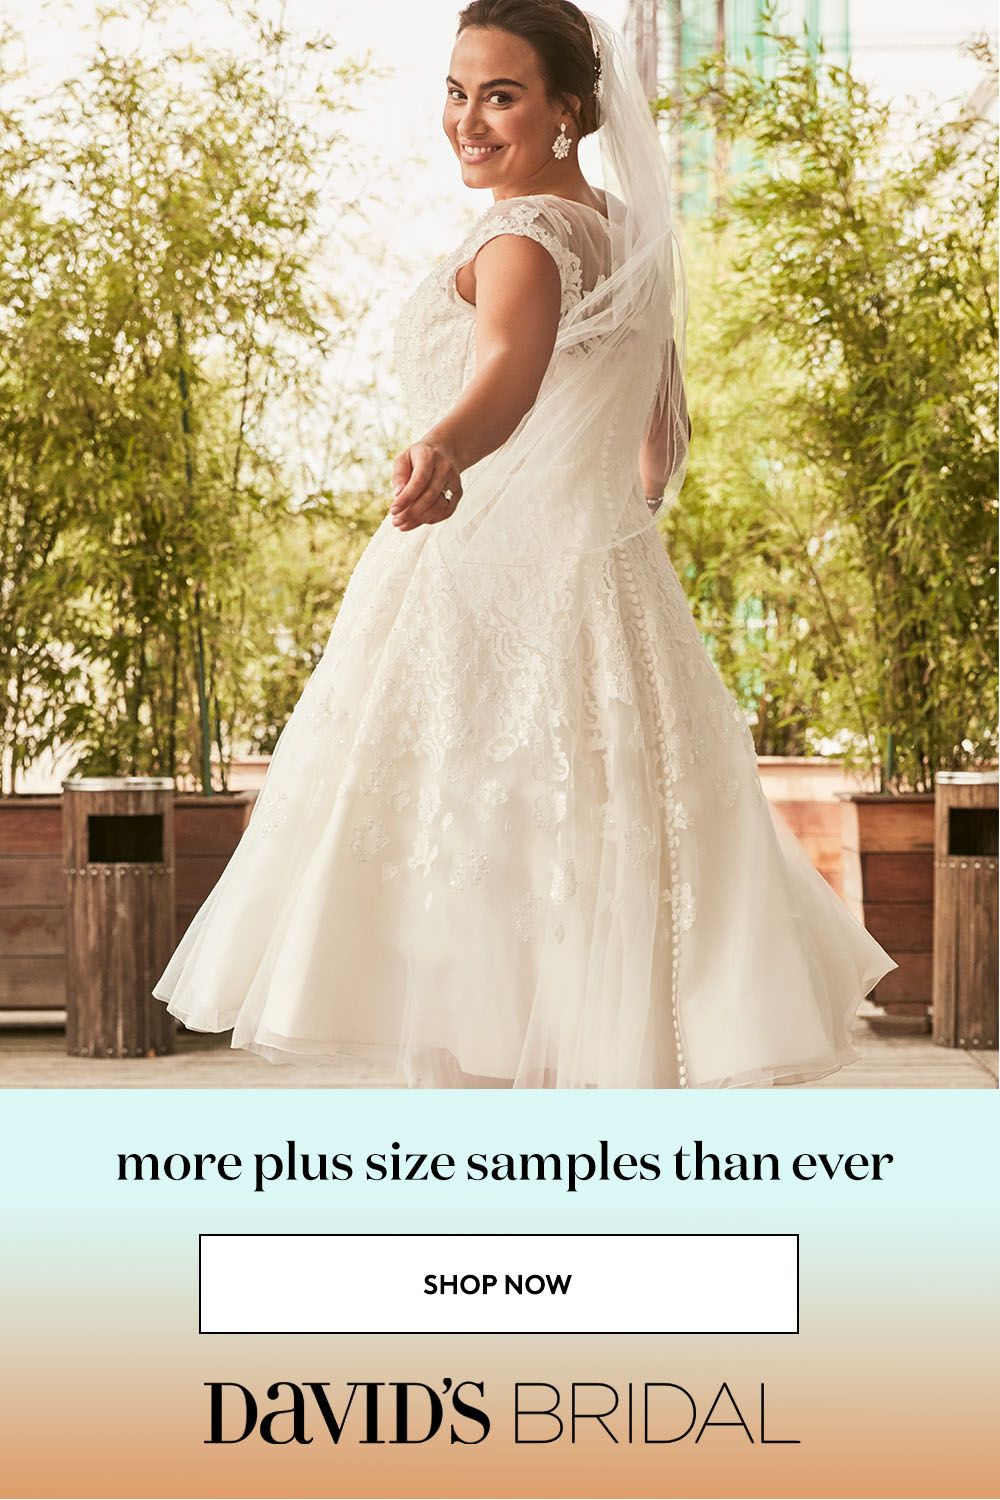 David S Bridal Carries More Samples In Sizes 0 30w Than Ever So That Every Bride Can See How Wedding Dresses Actually Fit Bridal Gowns Bridal Wedding Dresses [ 1500 x 1000 Pixel ]